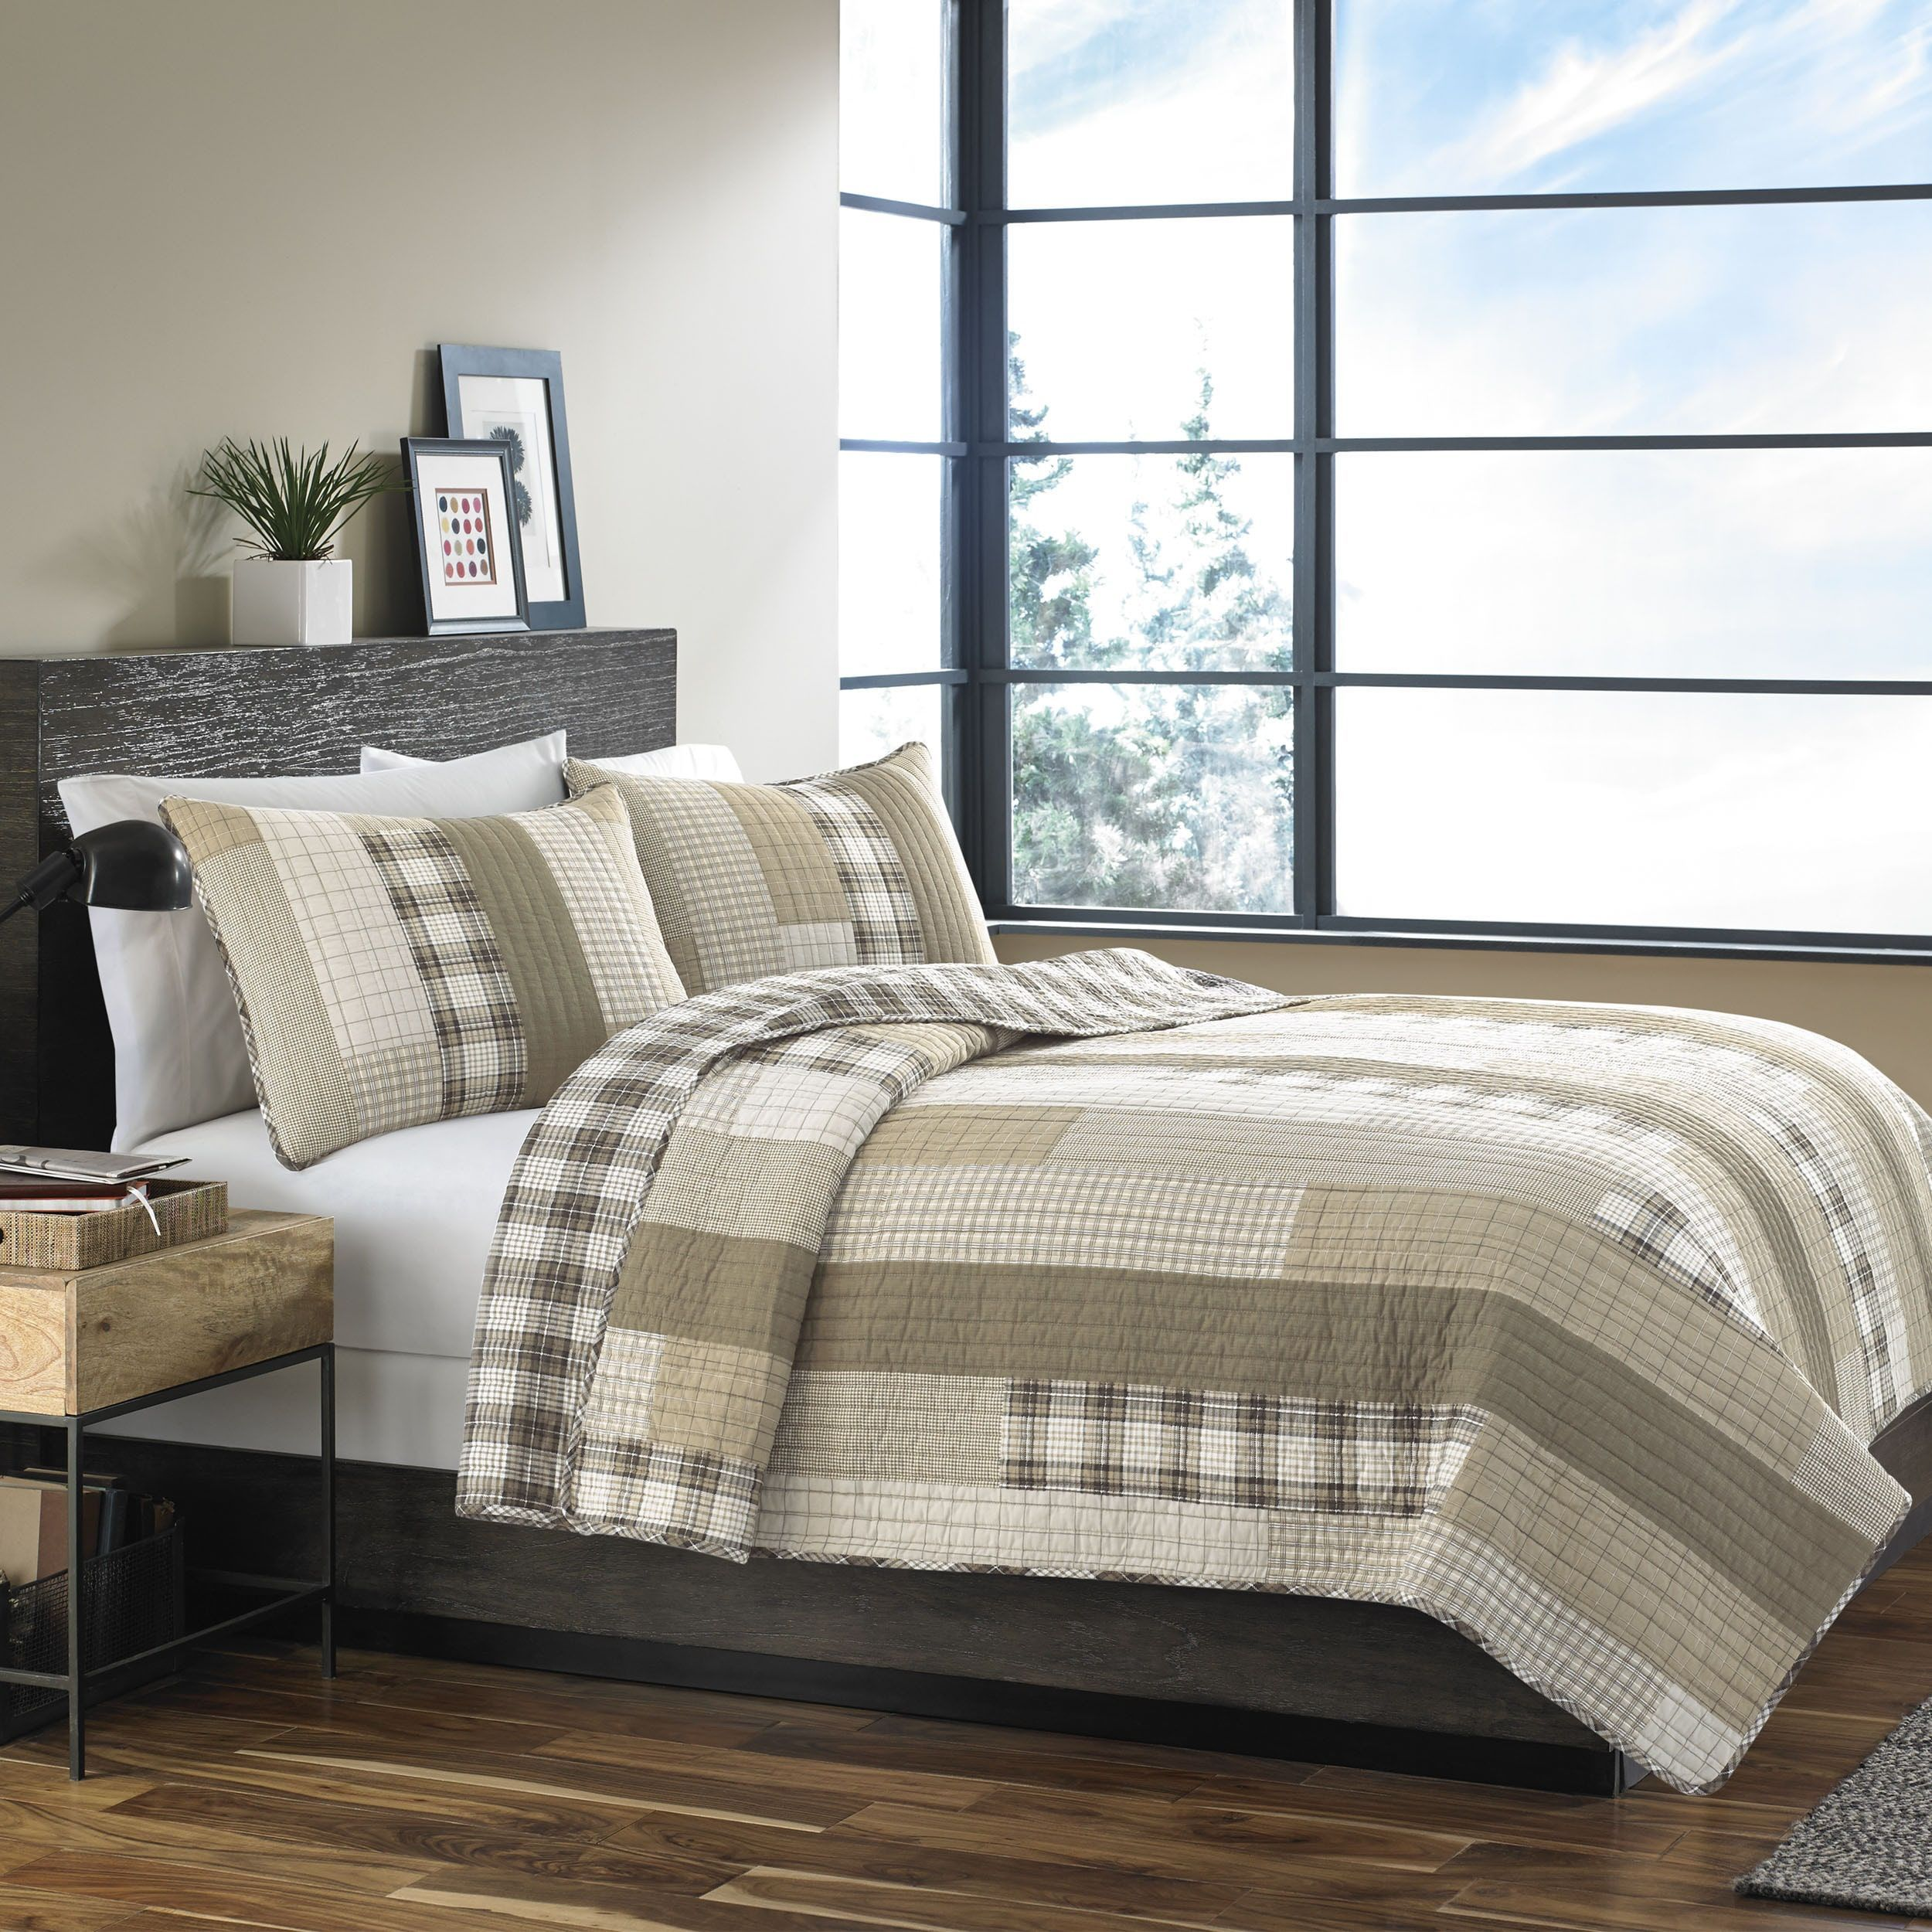 bauer today overstock bedding quilt free eddie island product plum set camano bed shipping bath